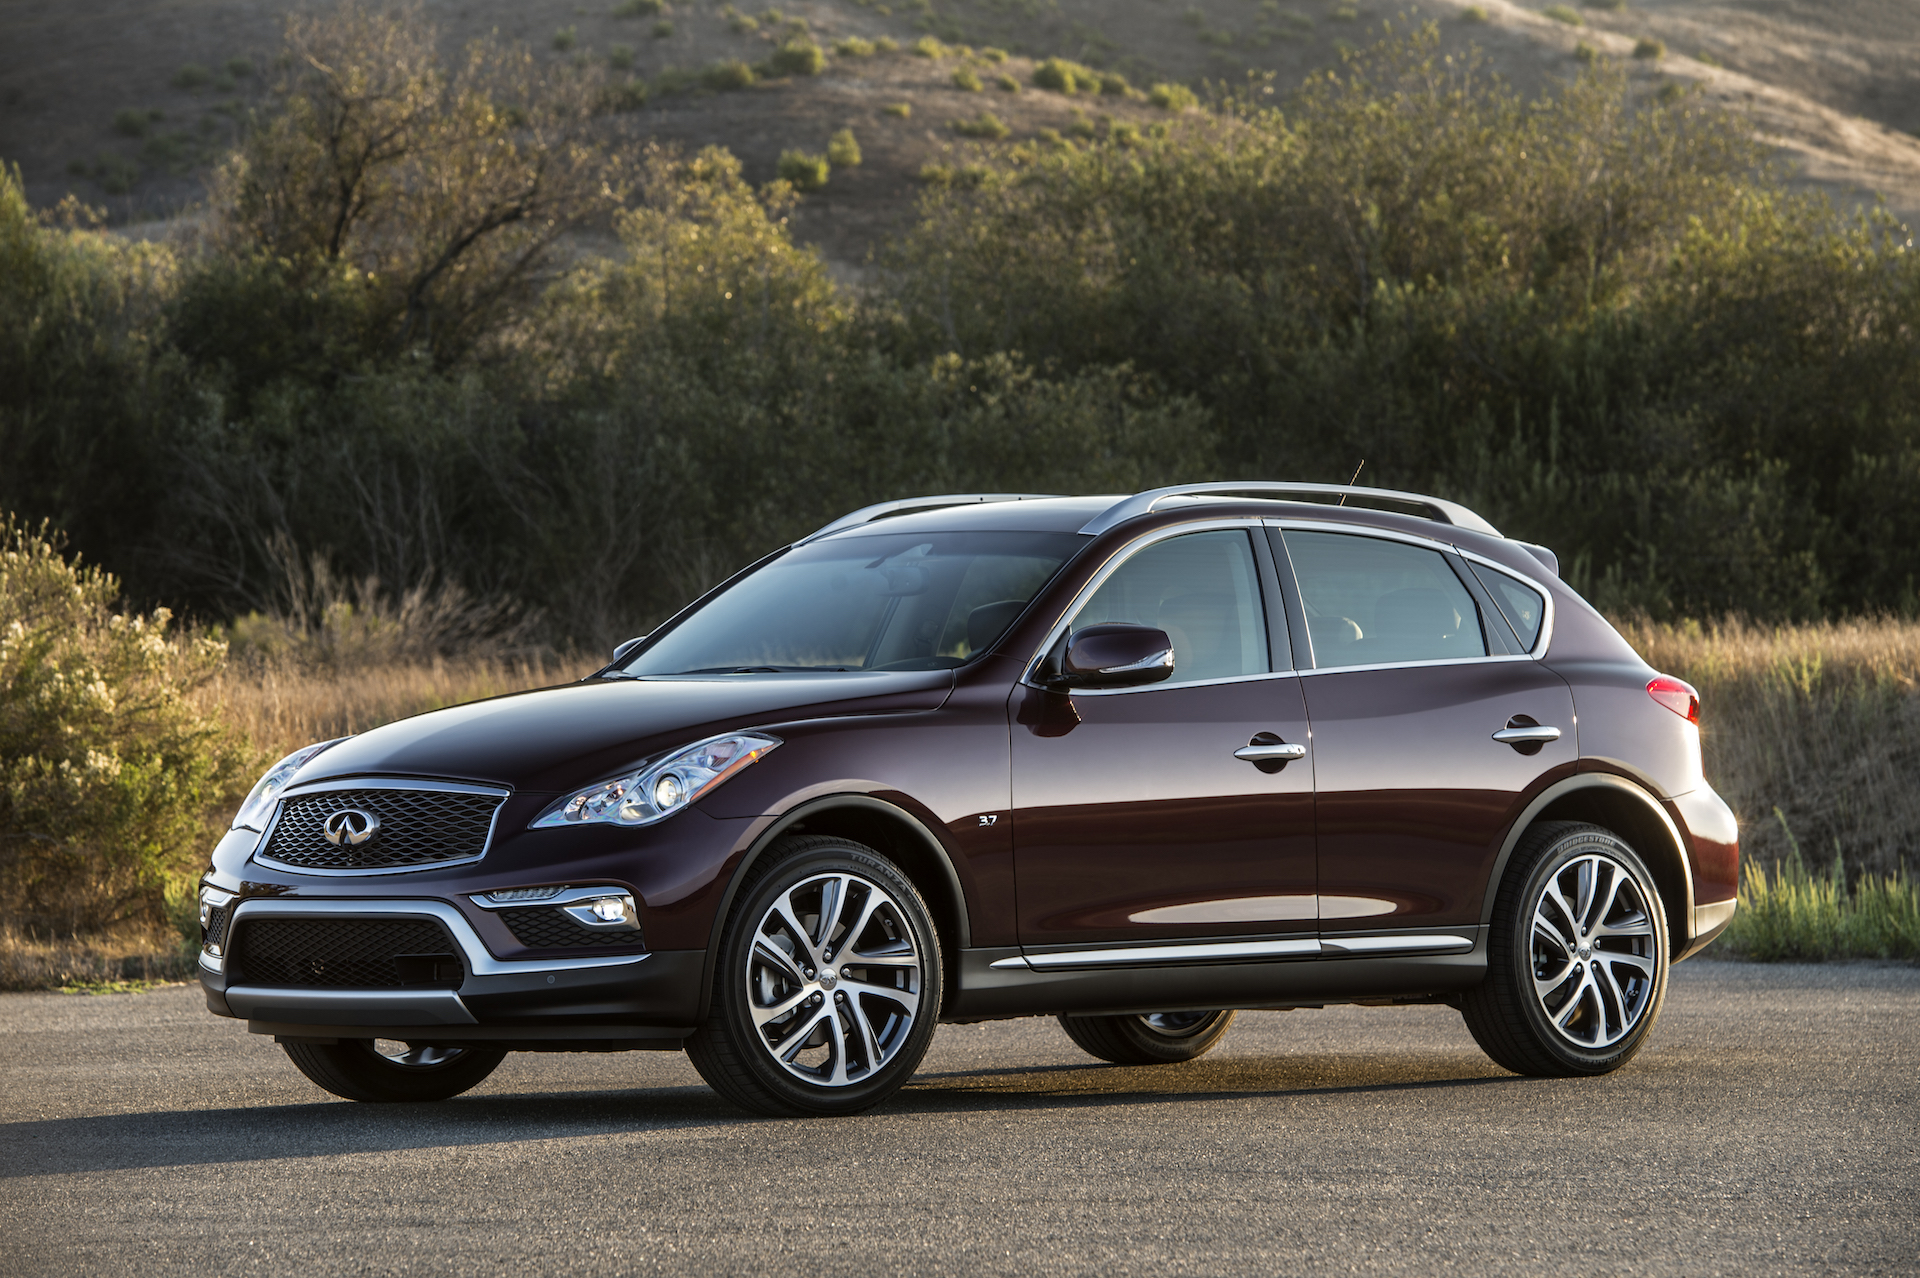 Crossover cross up 2018 Infiniti QX50 skipped QX60 Hybrid shelved